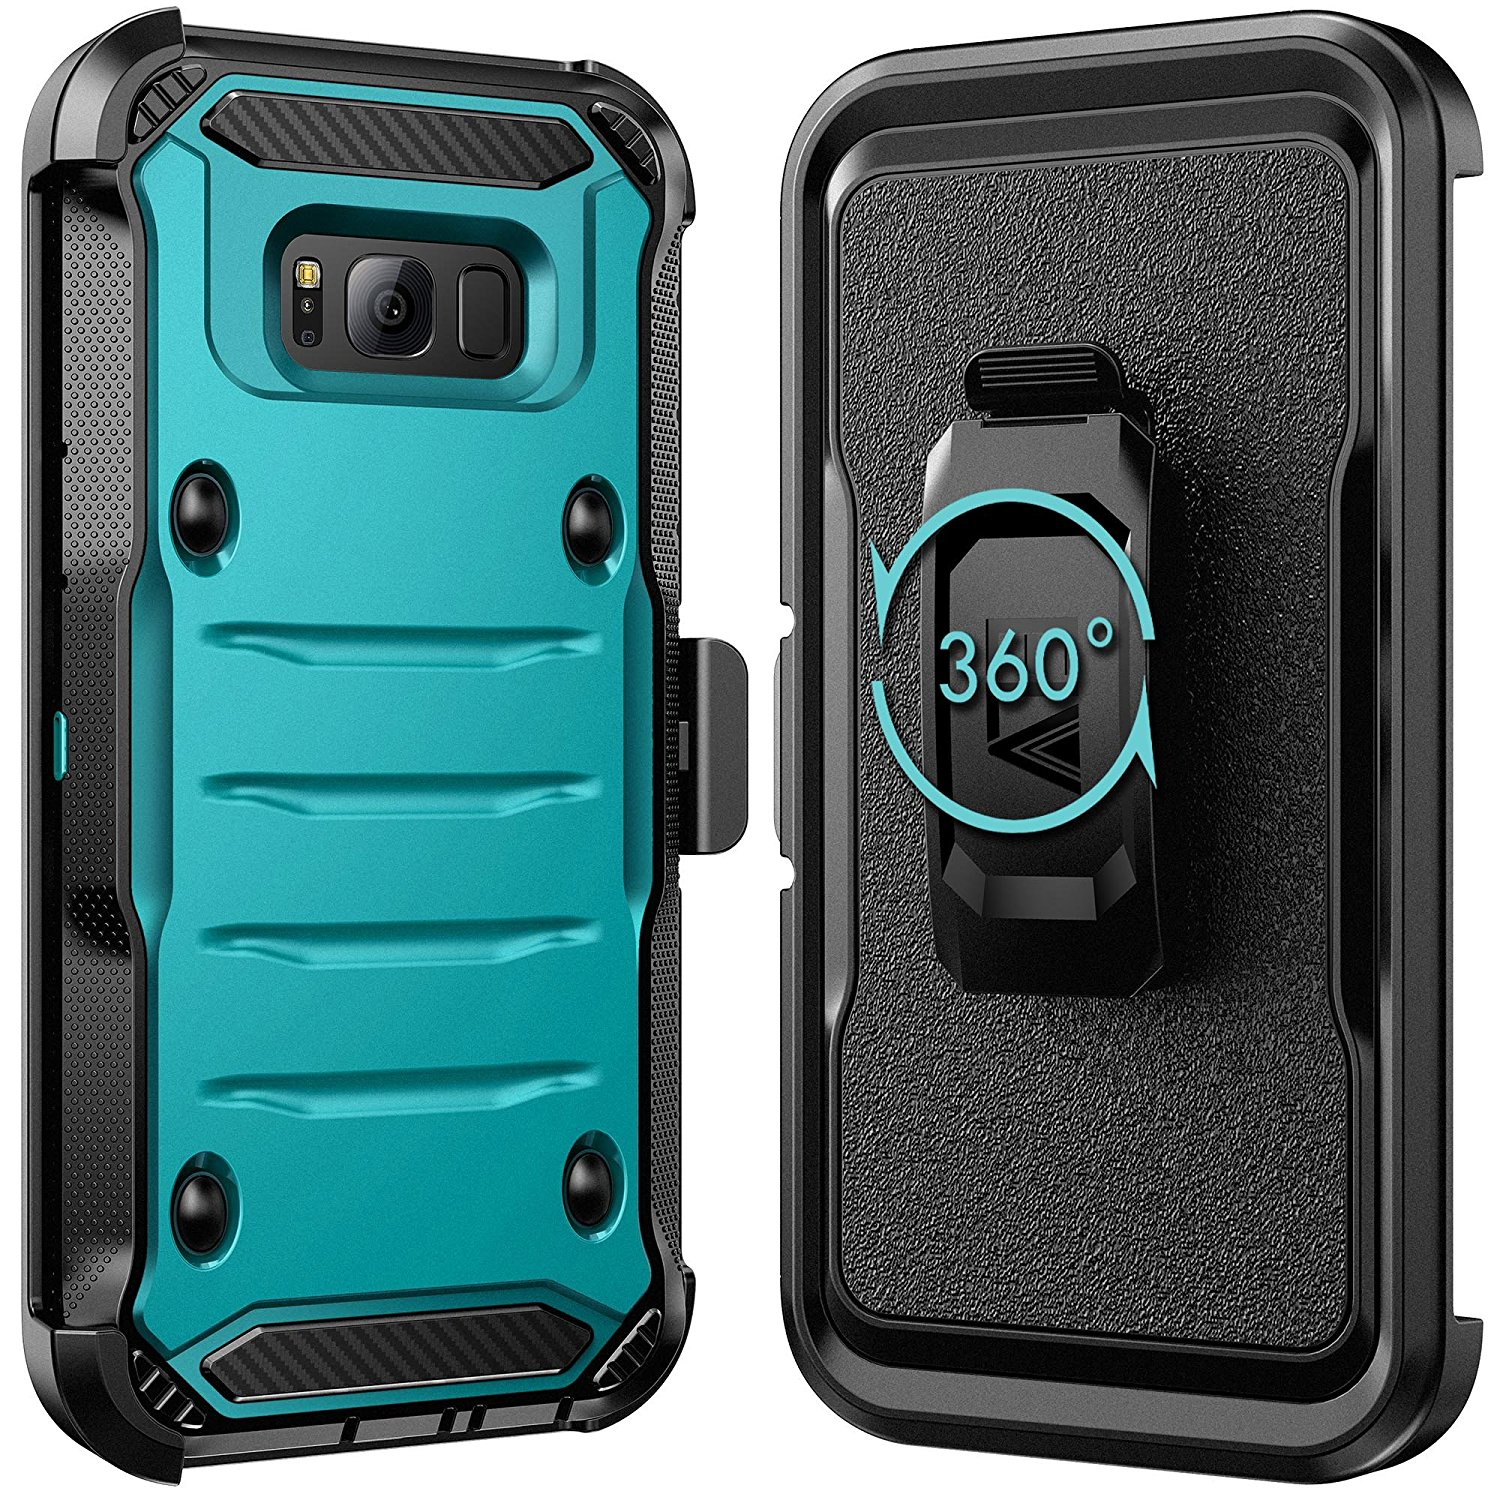 Galaxy S8 Plus Case E Lv Belt Swivel Clip Kickstand Dual Layer Asoftcase Armor Holster Defender Full Body Protective Cover For Samsung Red